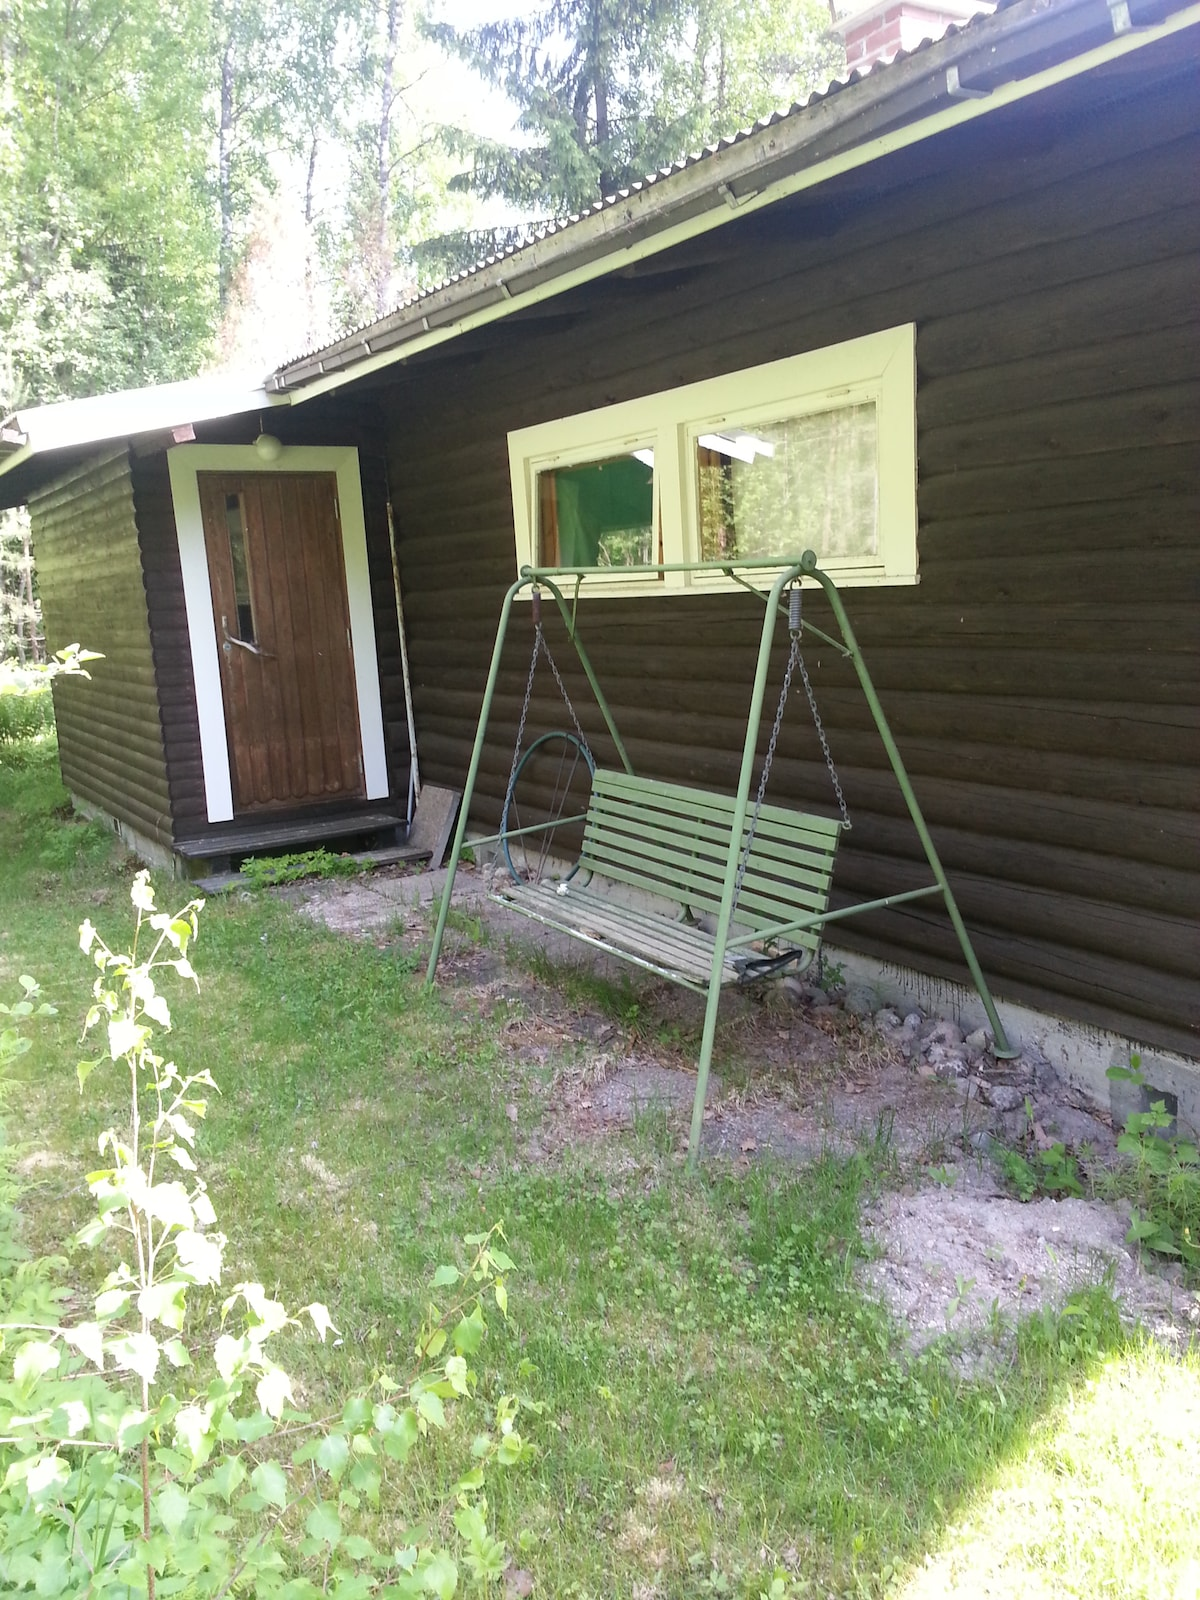 One of the swings and the cabin from one side.